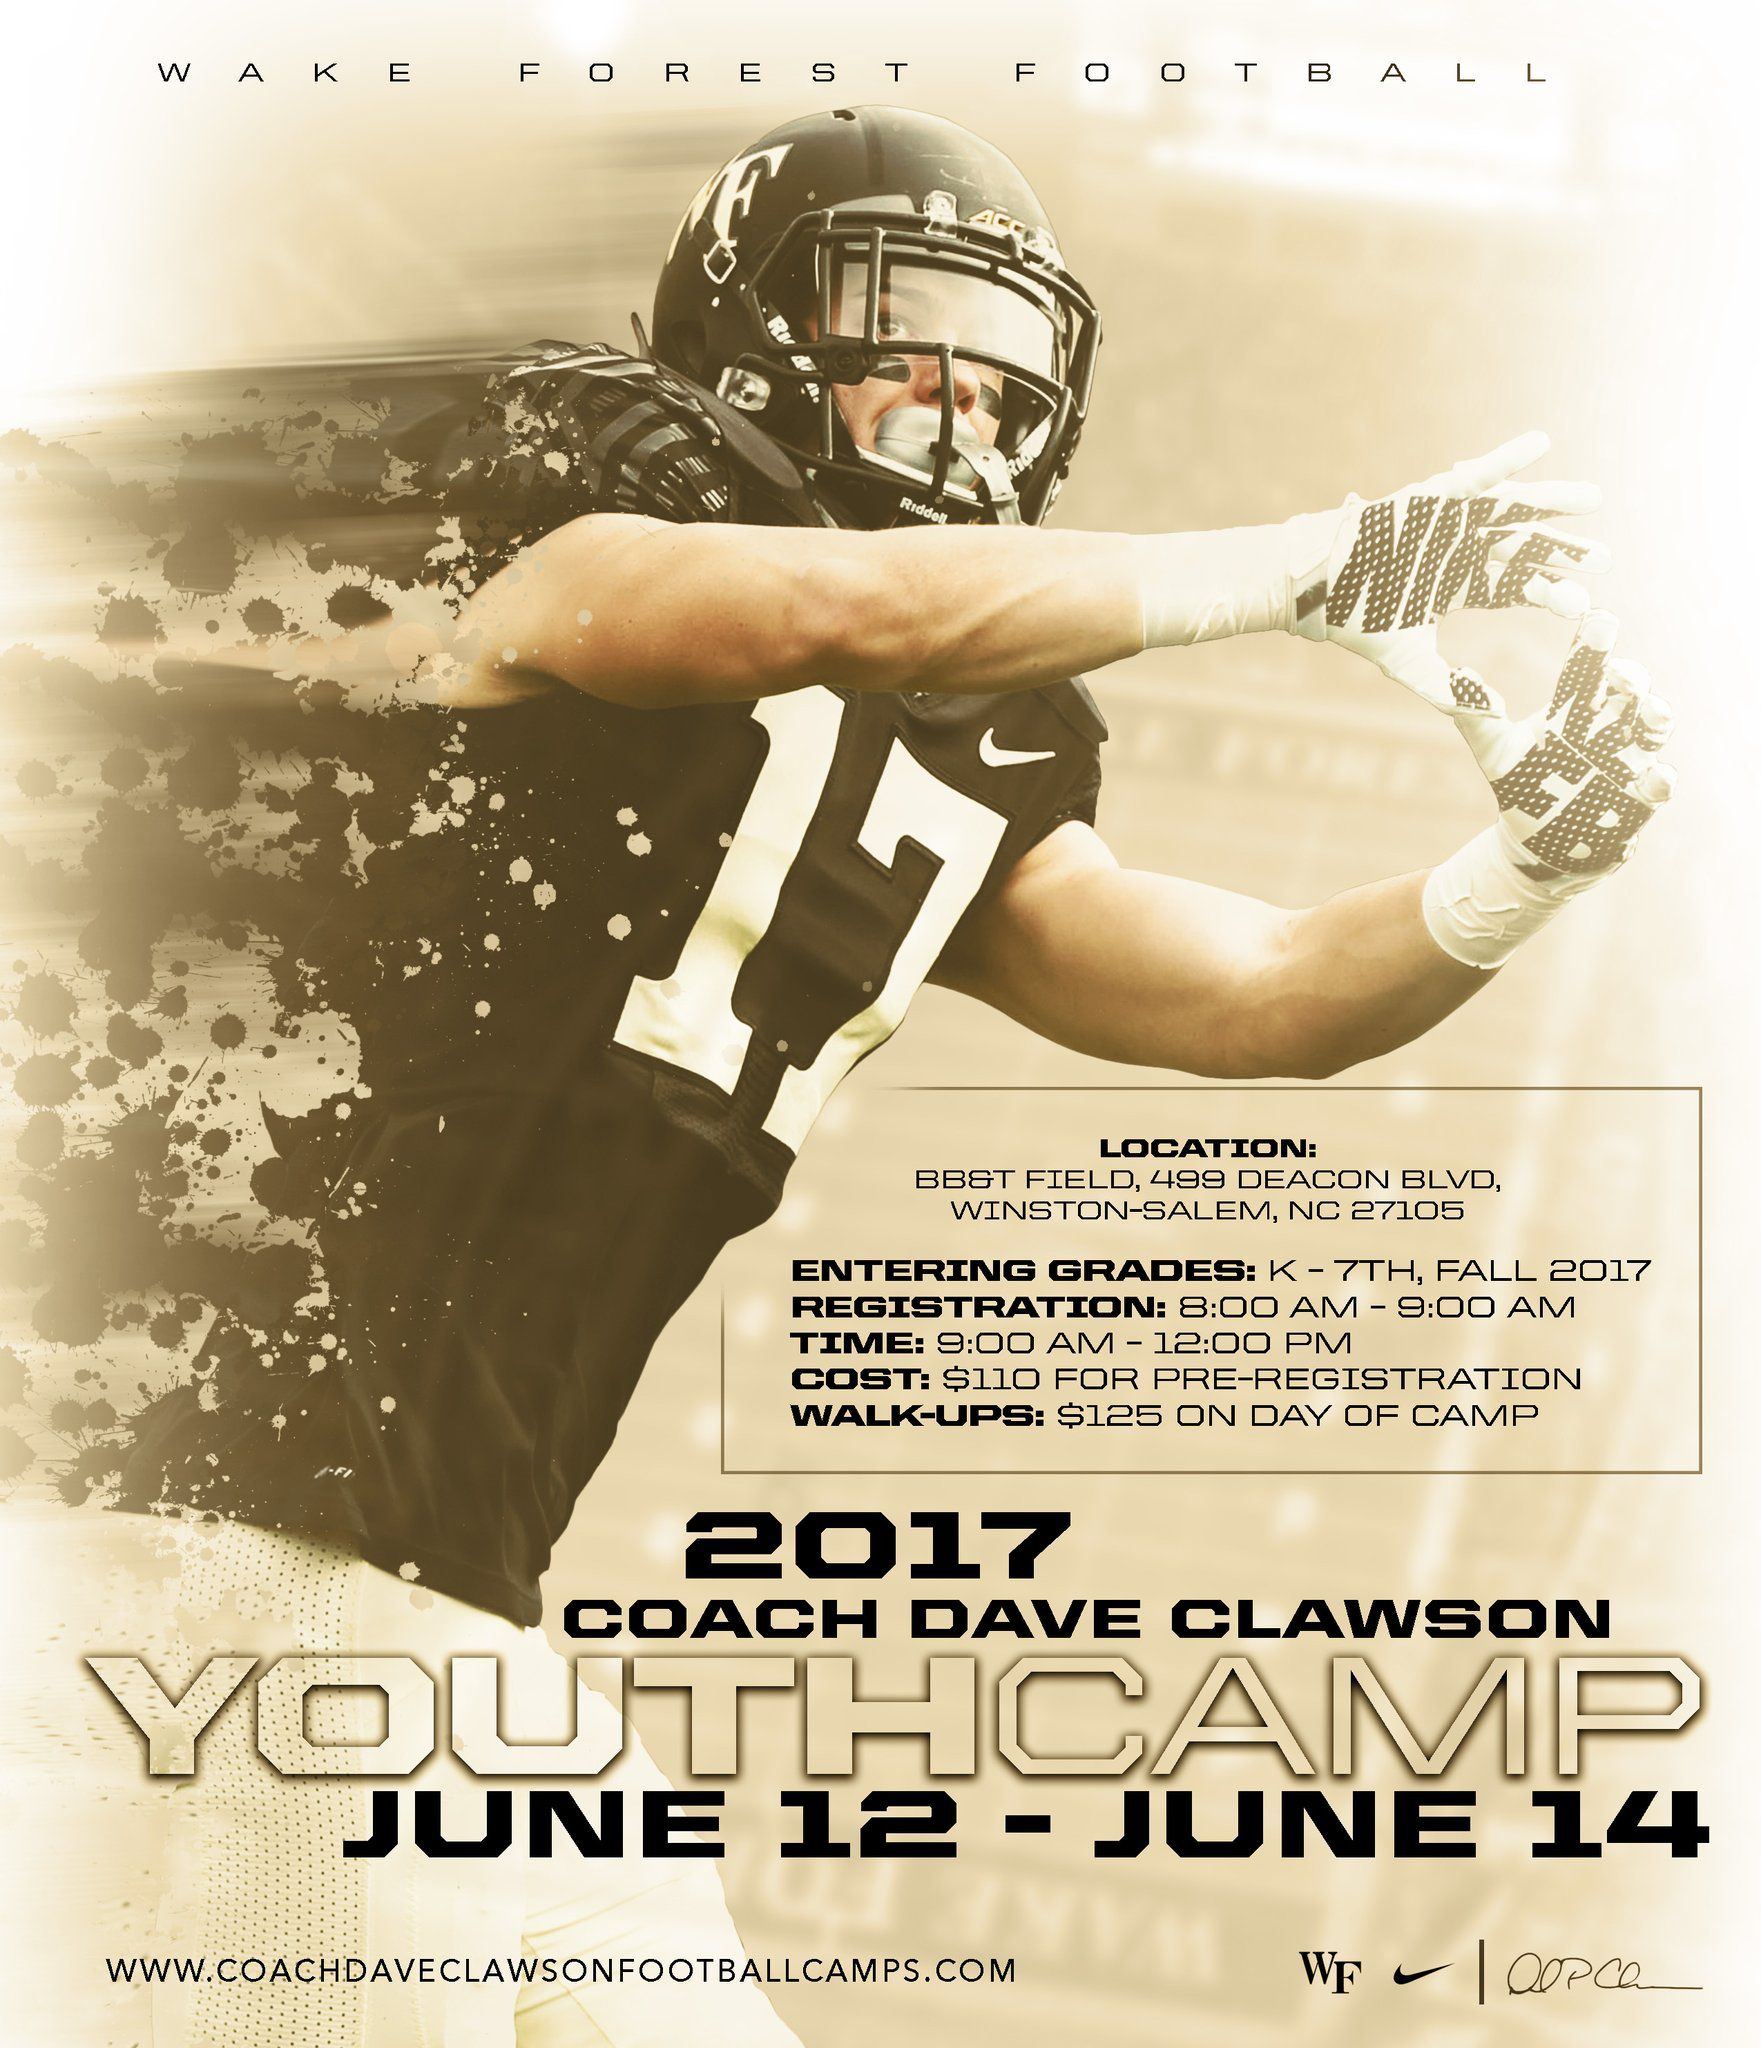 Wake forest College athletics, Clinic, Camping 2017